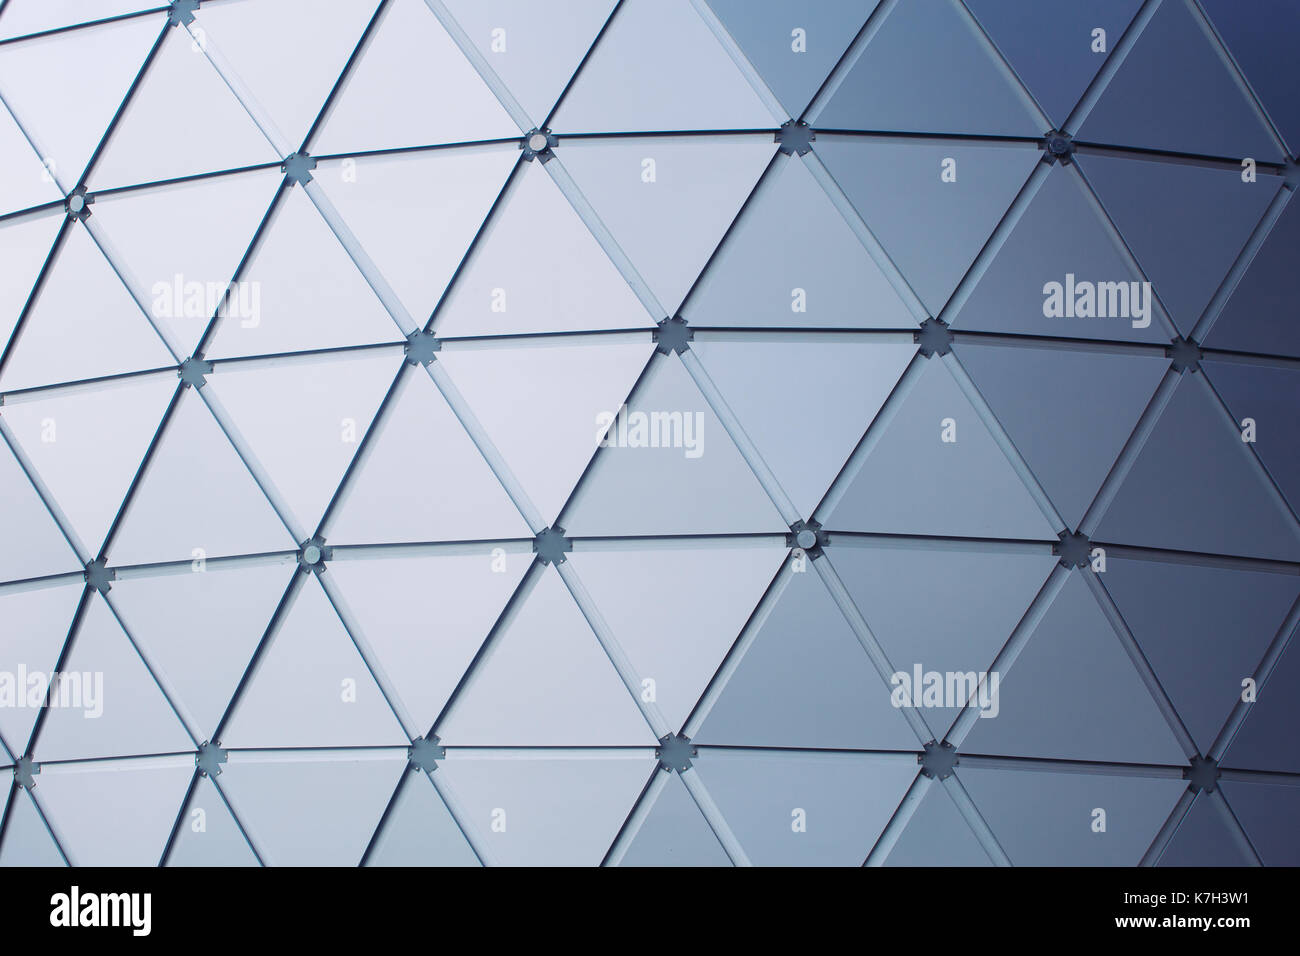 Modern Building Triangle Geometry Style Roof Design Architecture Stock Photo Alamy